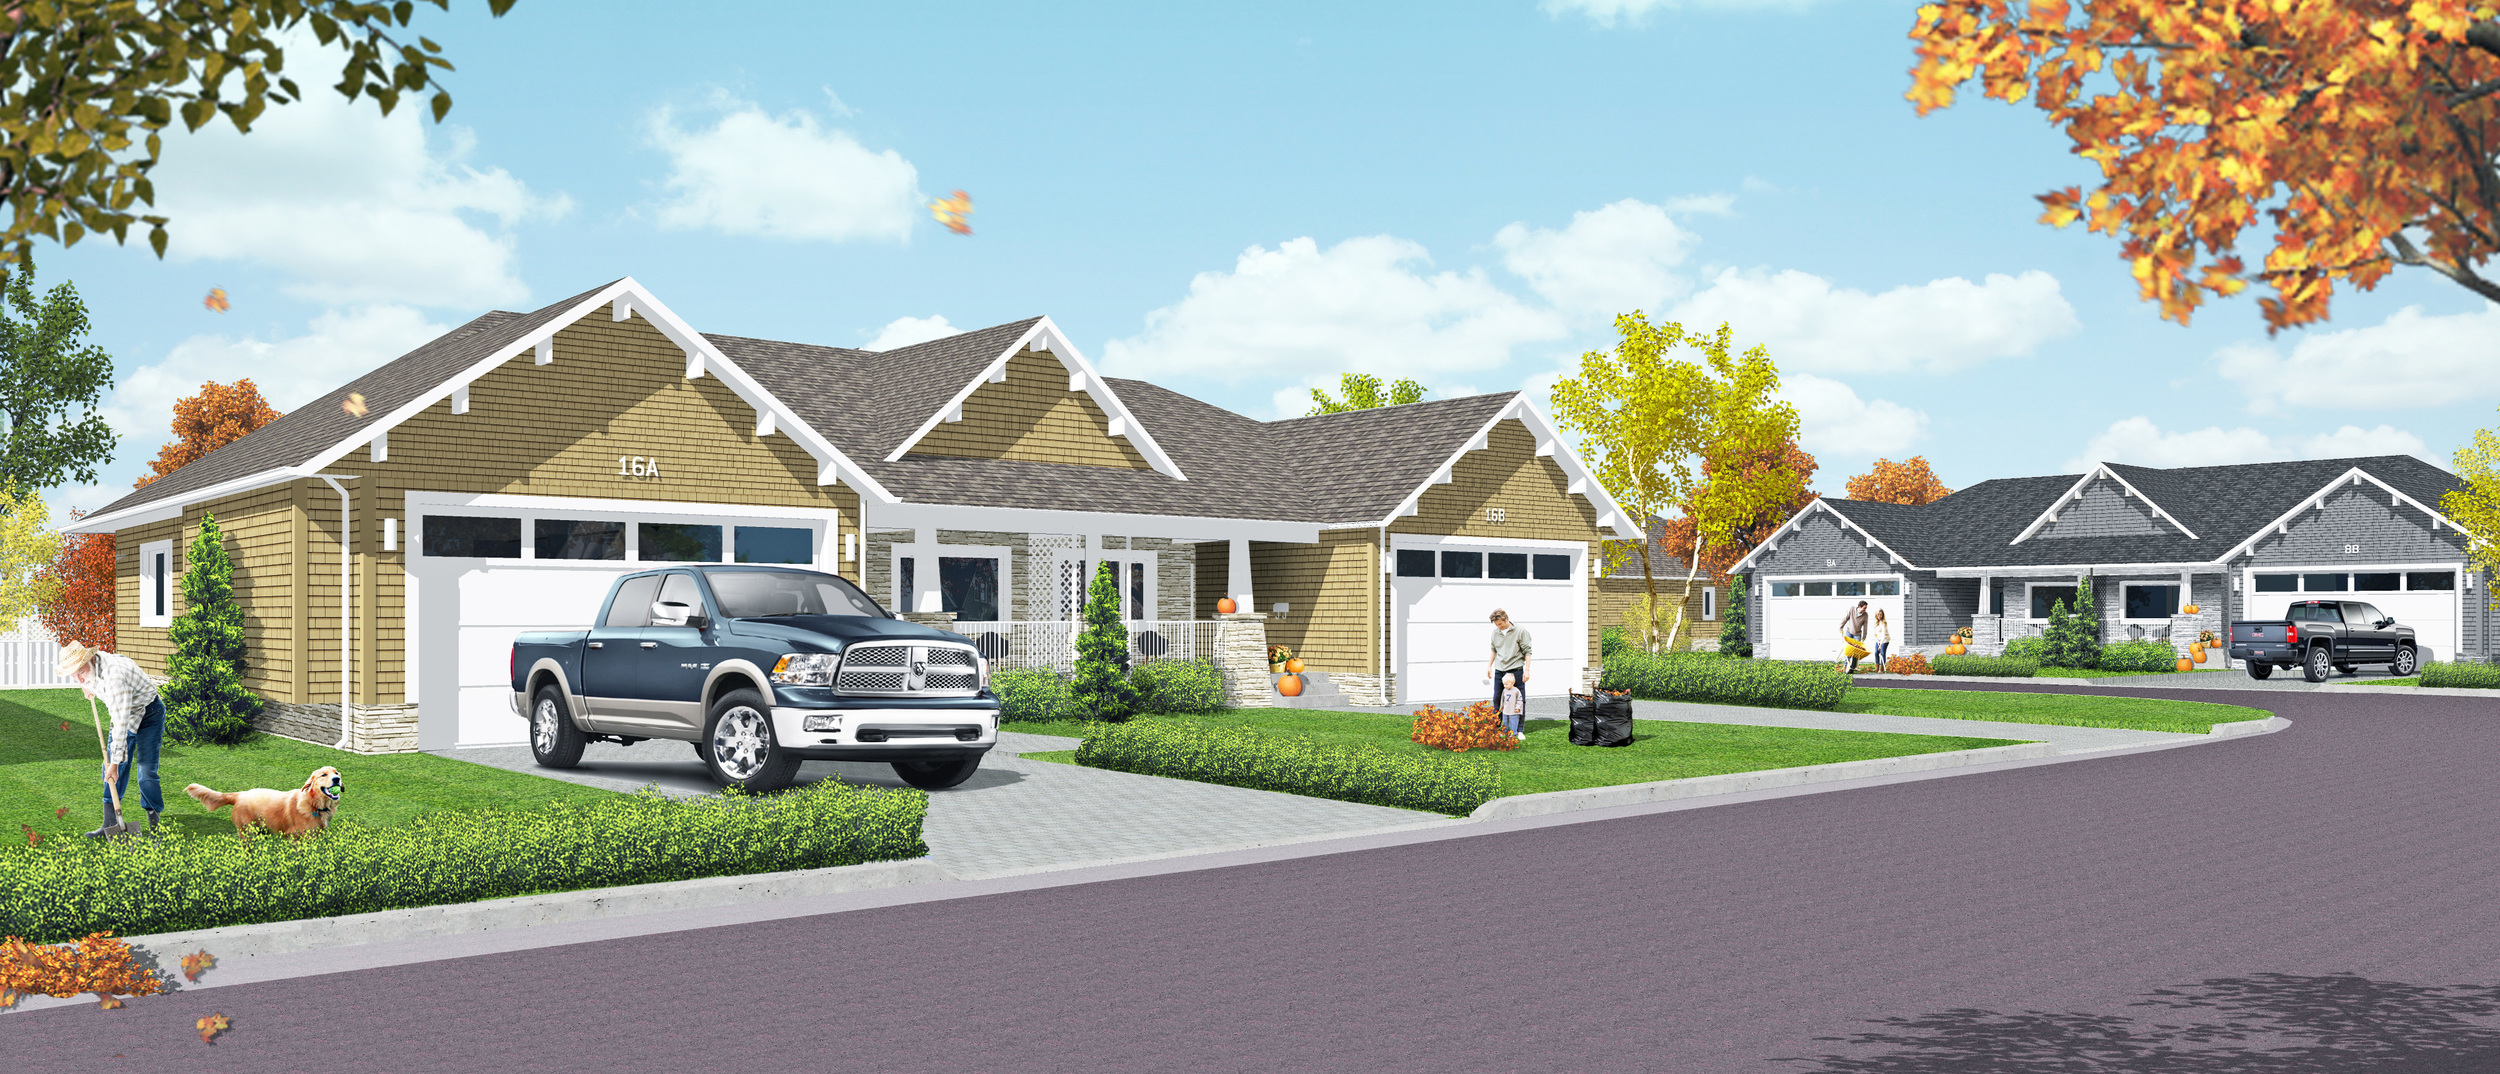 Meighen-Estates_Rendering_1_all-white-trim_cropped_o.jpg